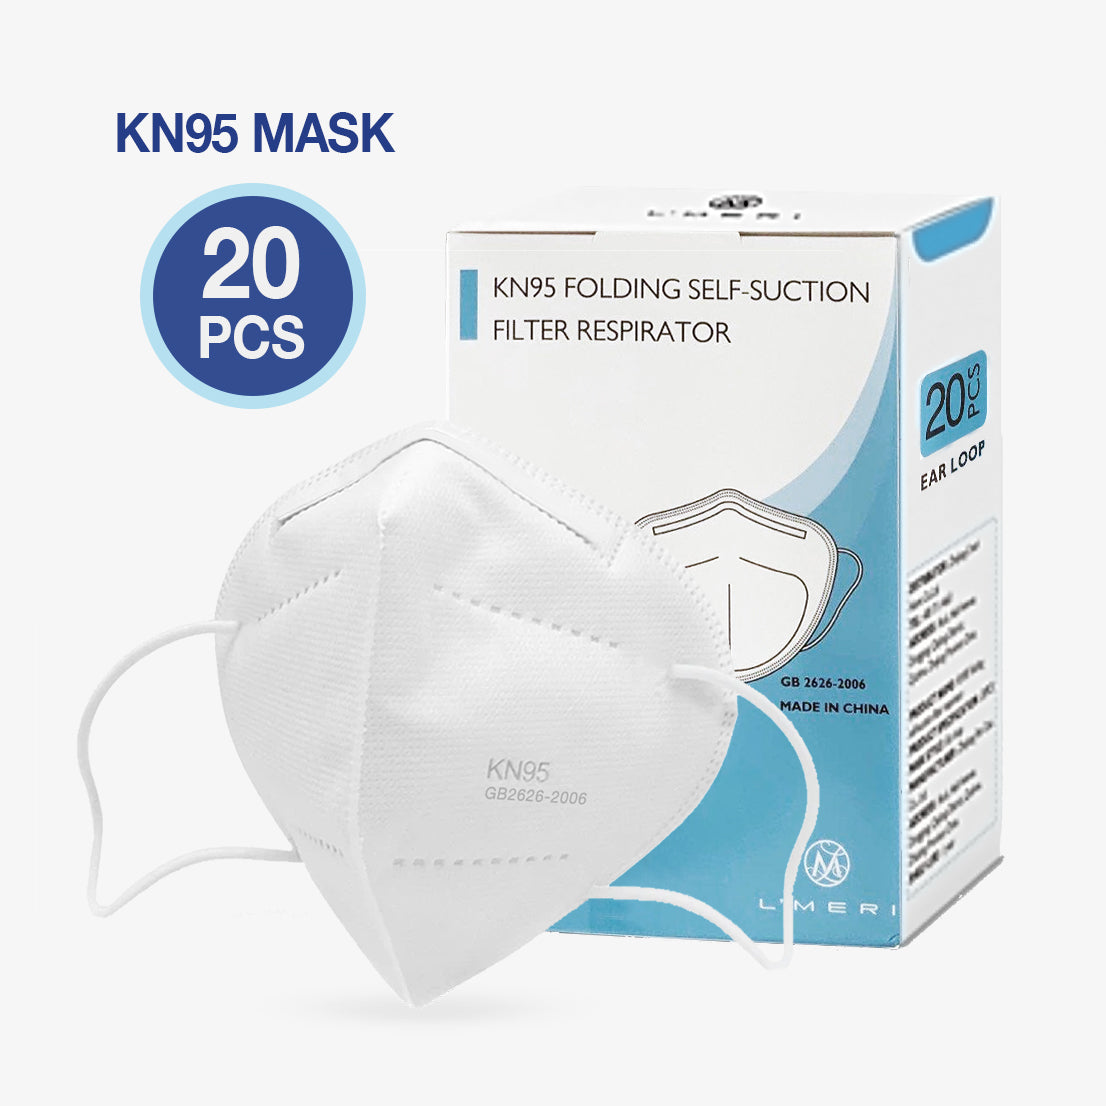 Disposable Mask Bundle Kit (Free Items)